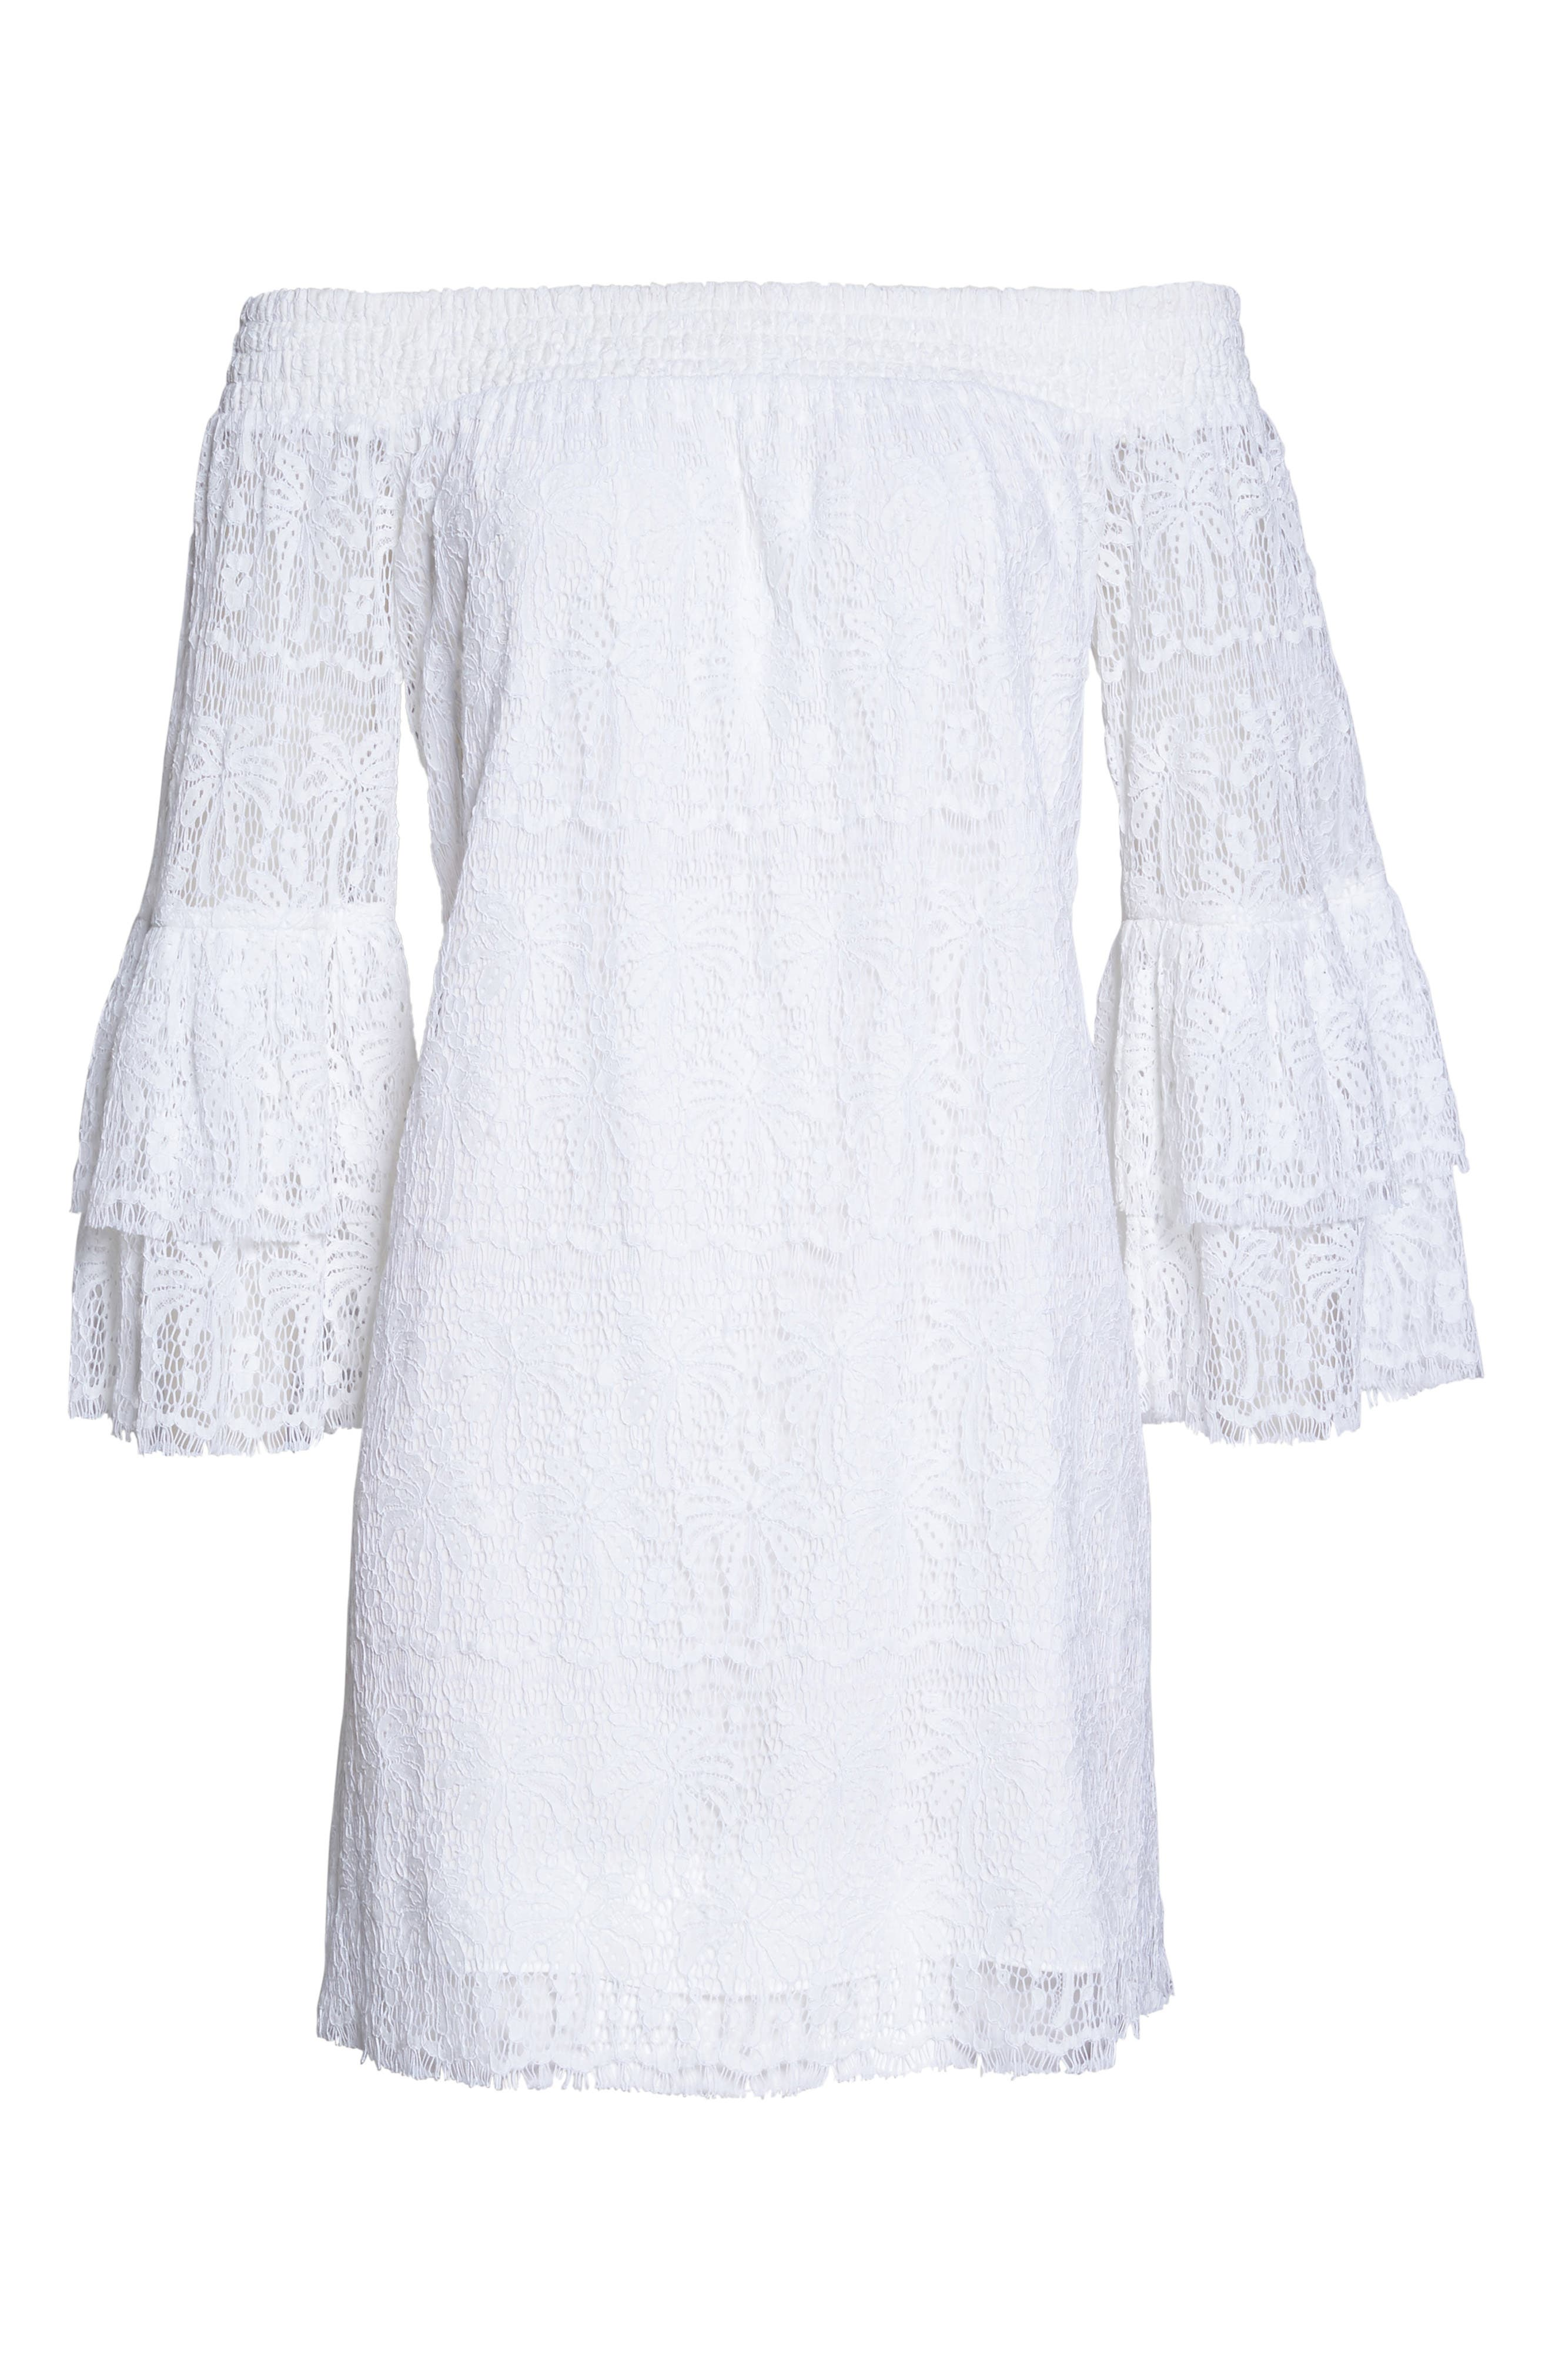 Tobyn Off the Shoulder Dres,                             Alternate thumbnail 6, color,                             Resort White Palm Tree Lace